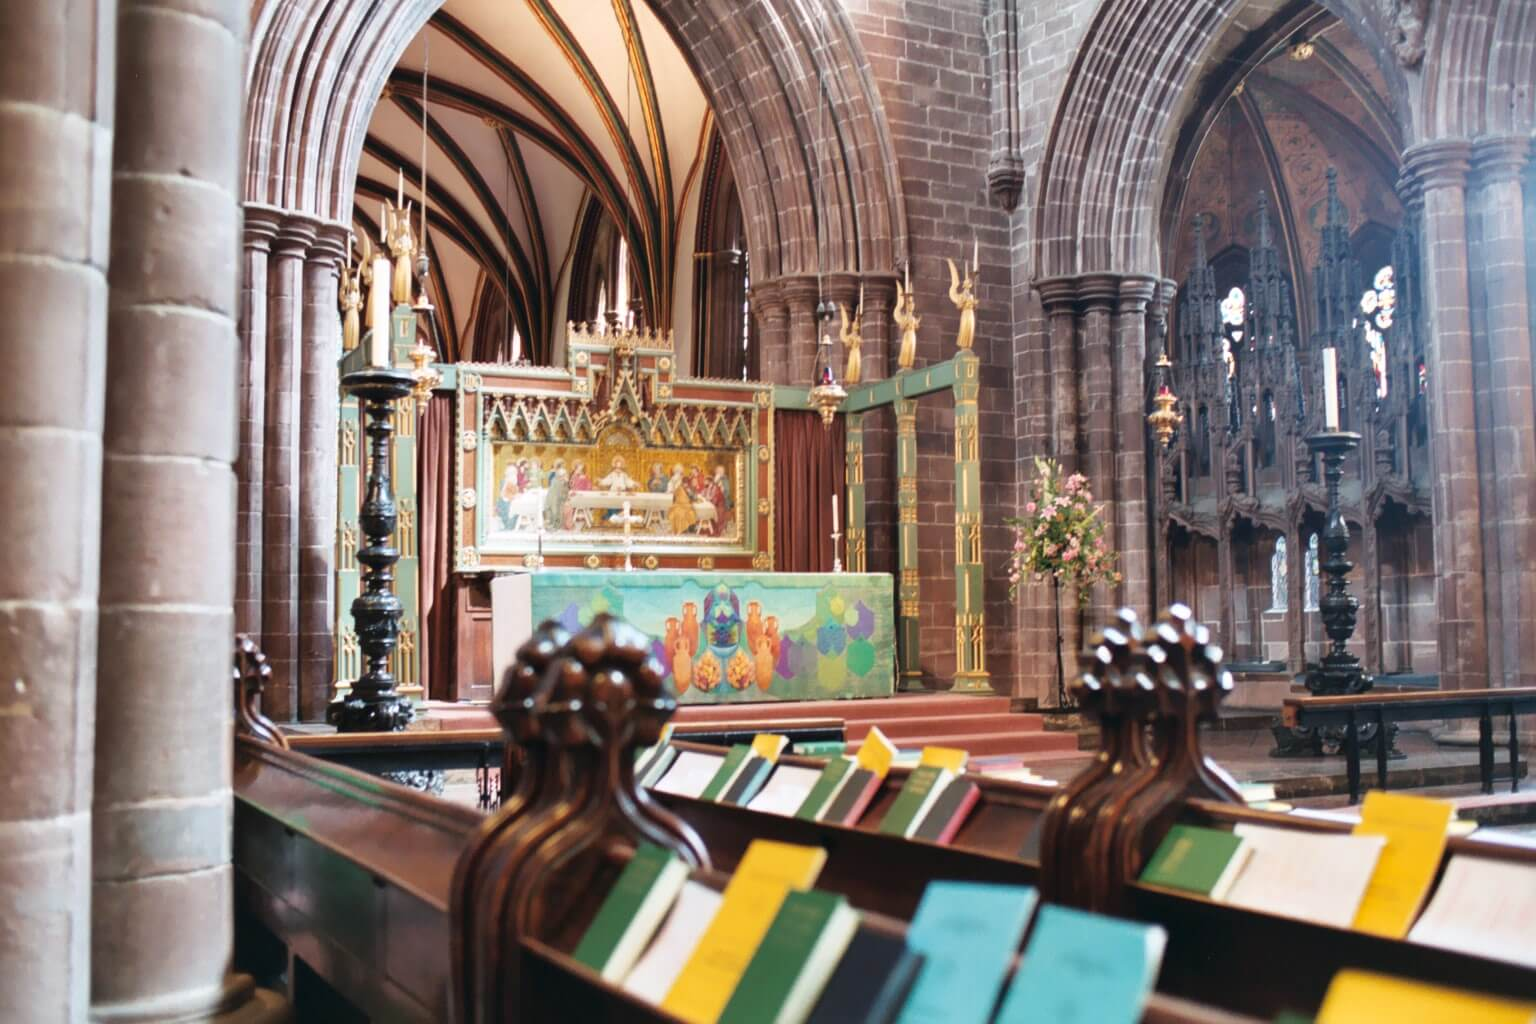 high-altar-quire-chester-cathedral-2004